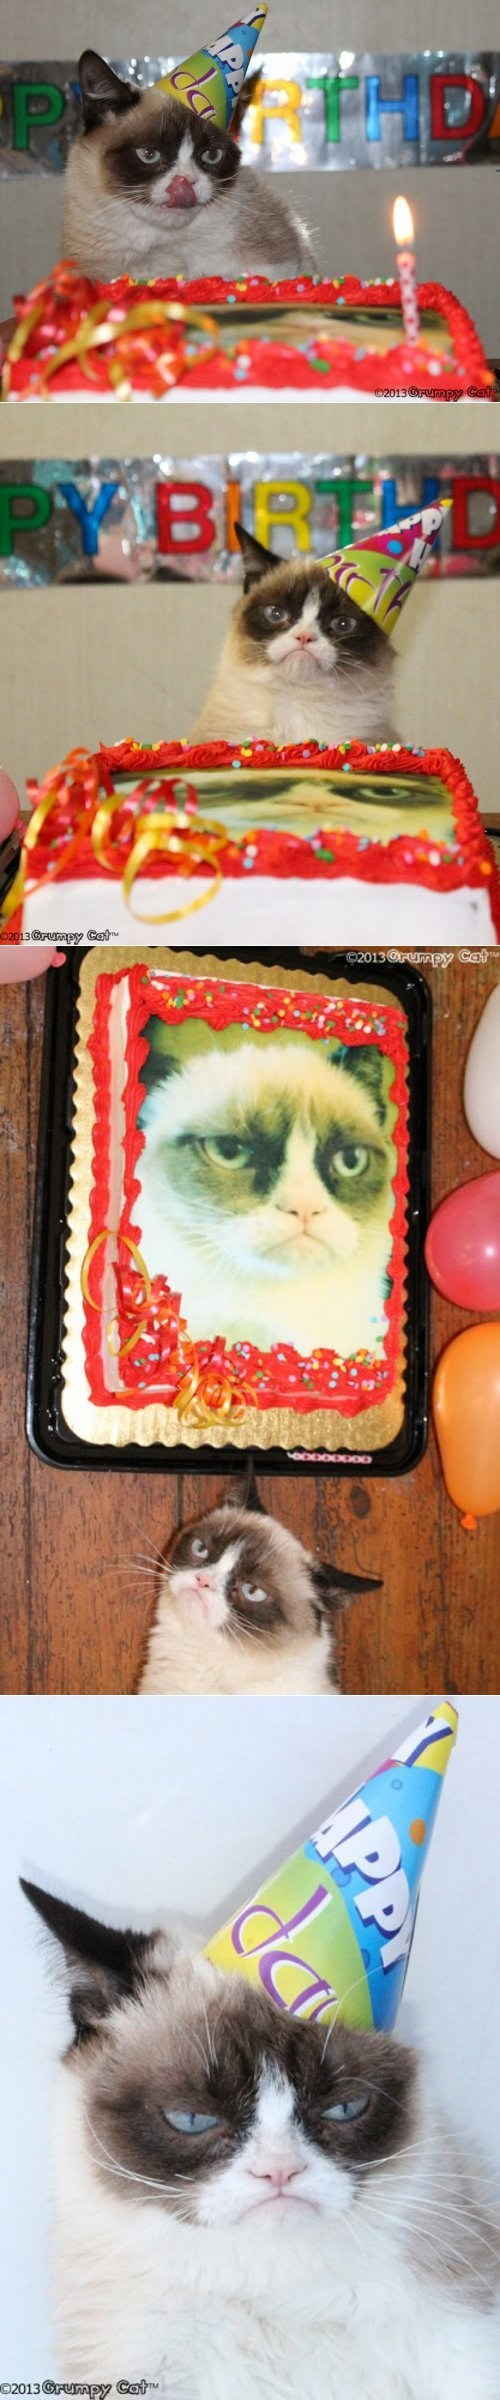 It's Grumpy Cat's Birthday!